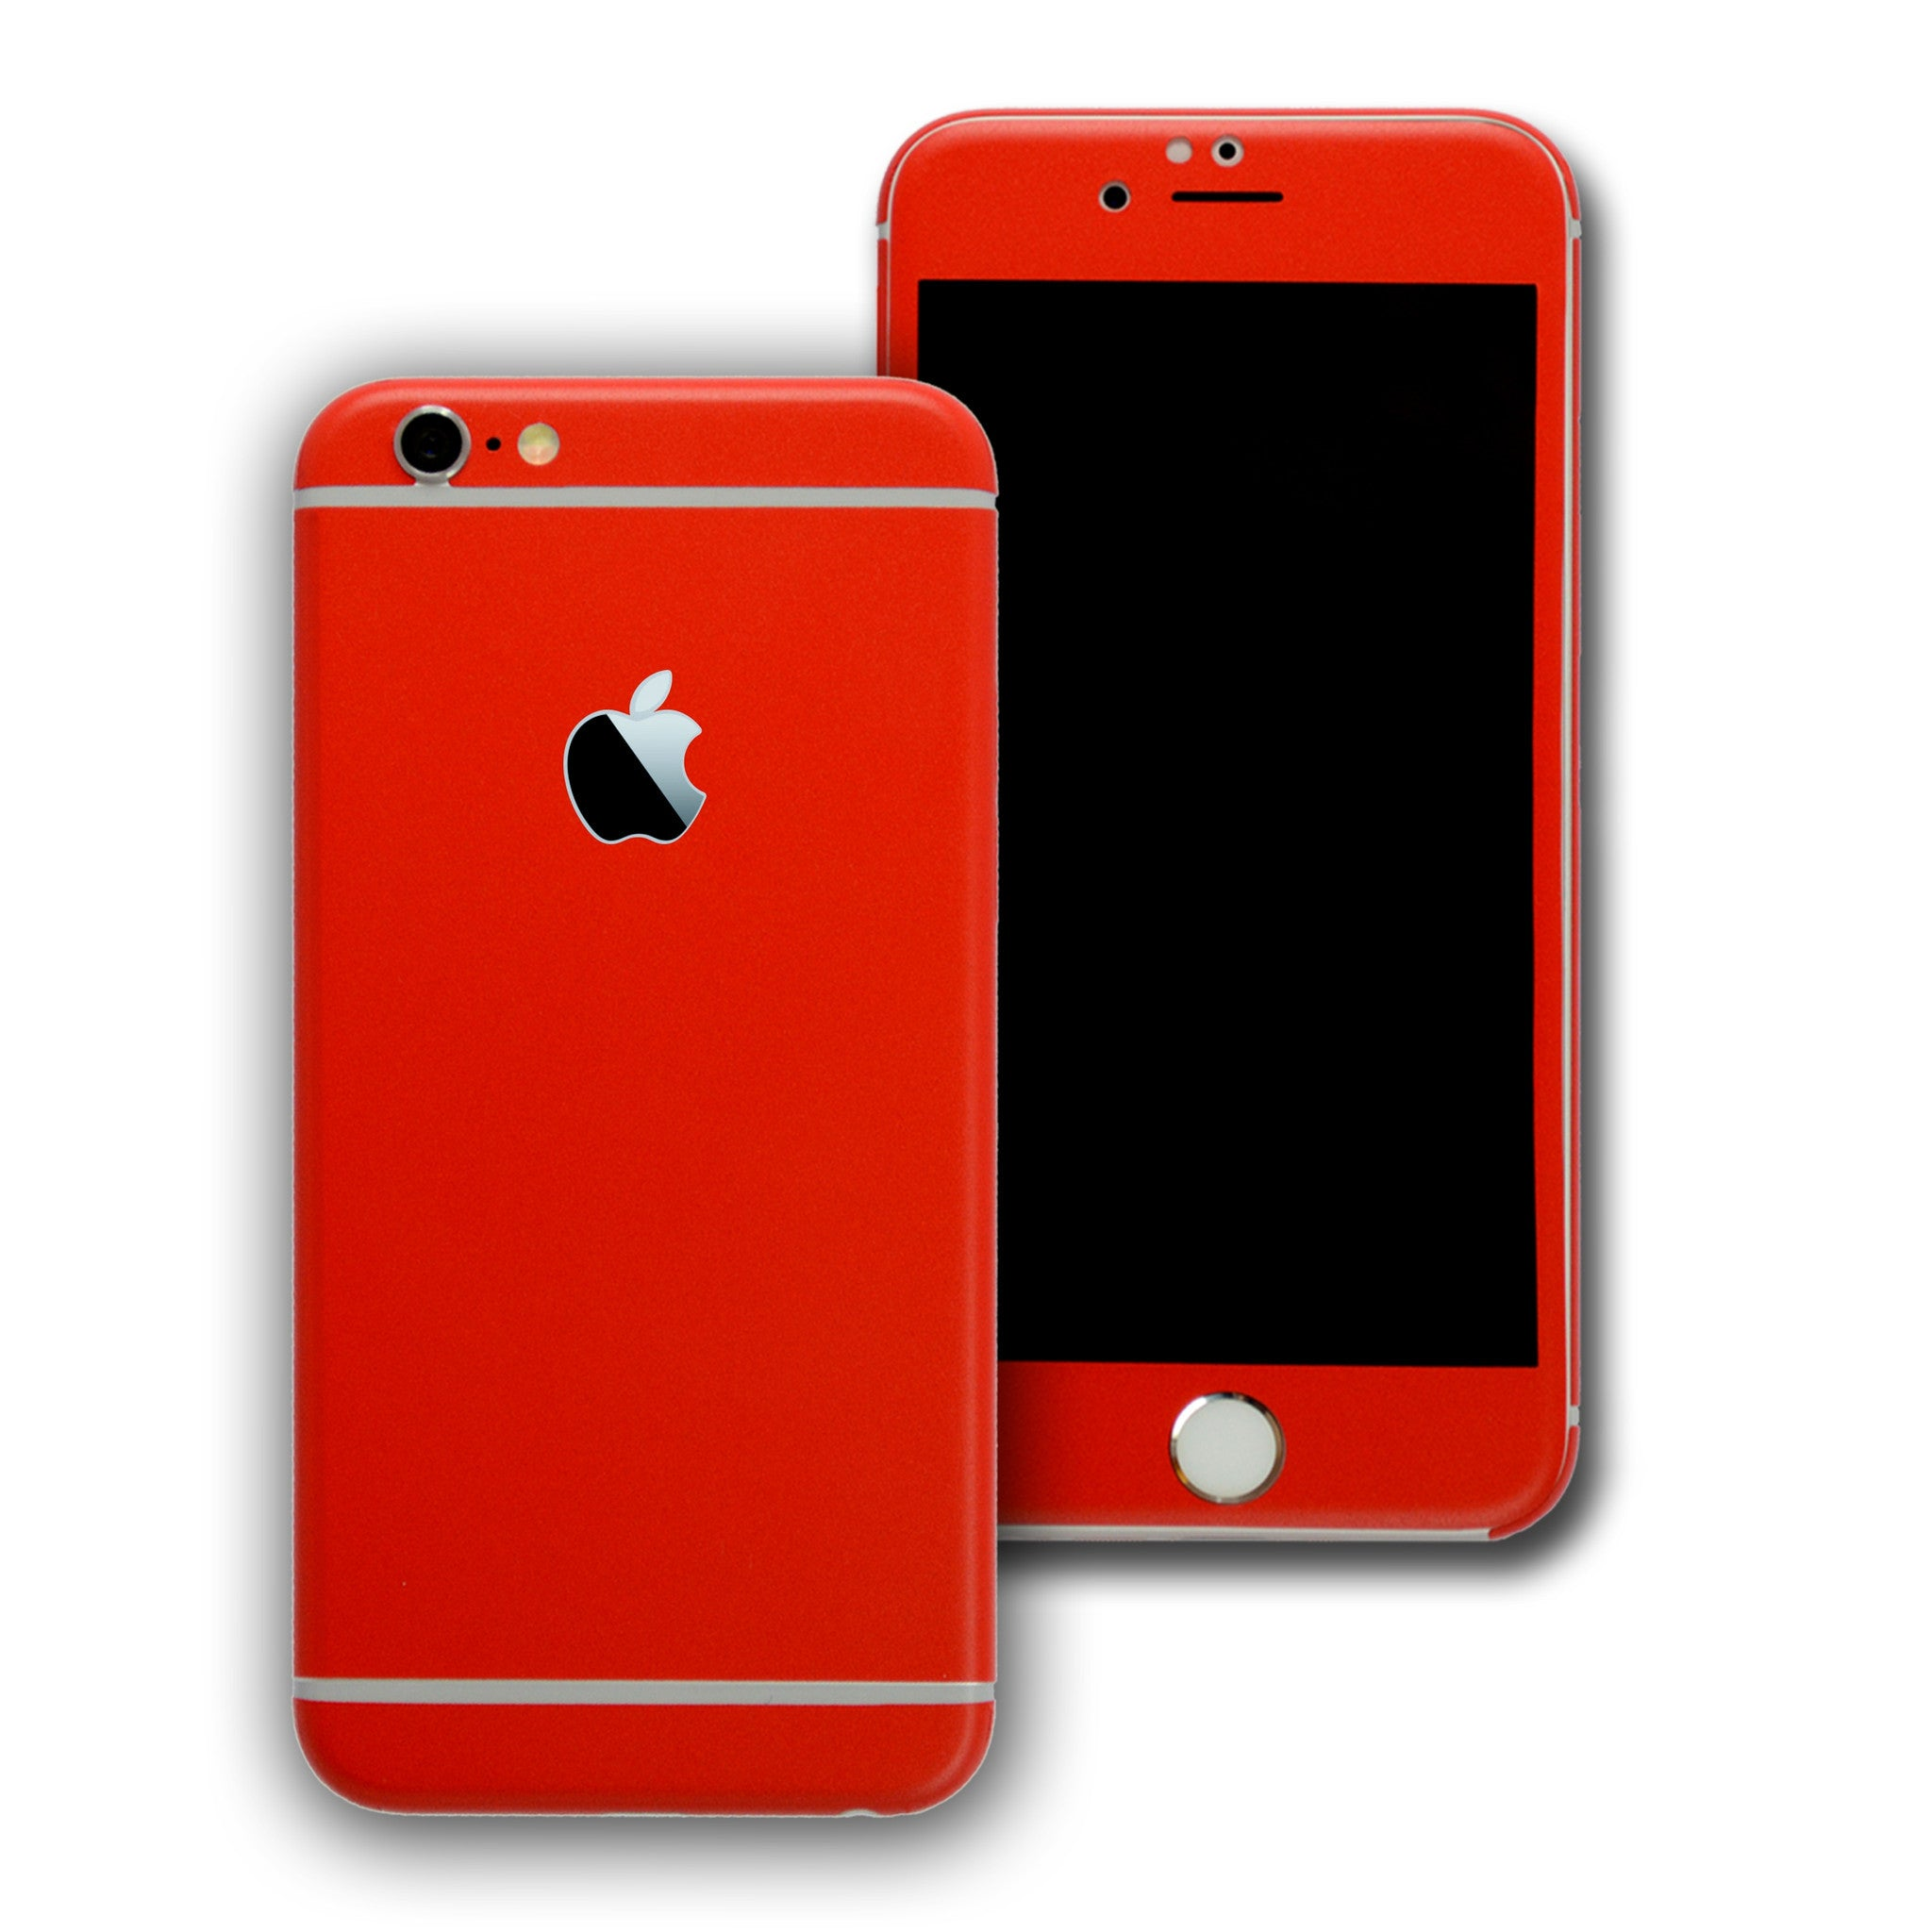 iPhone 6 Colorful RED MATT Skin Wrap Sticker Cover Protector Decal by EasySkinz